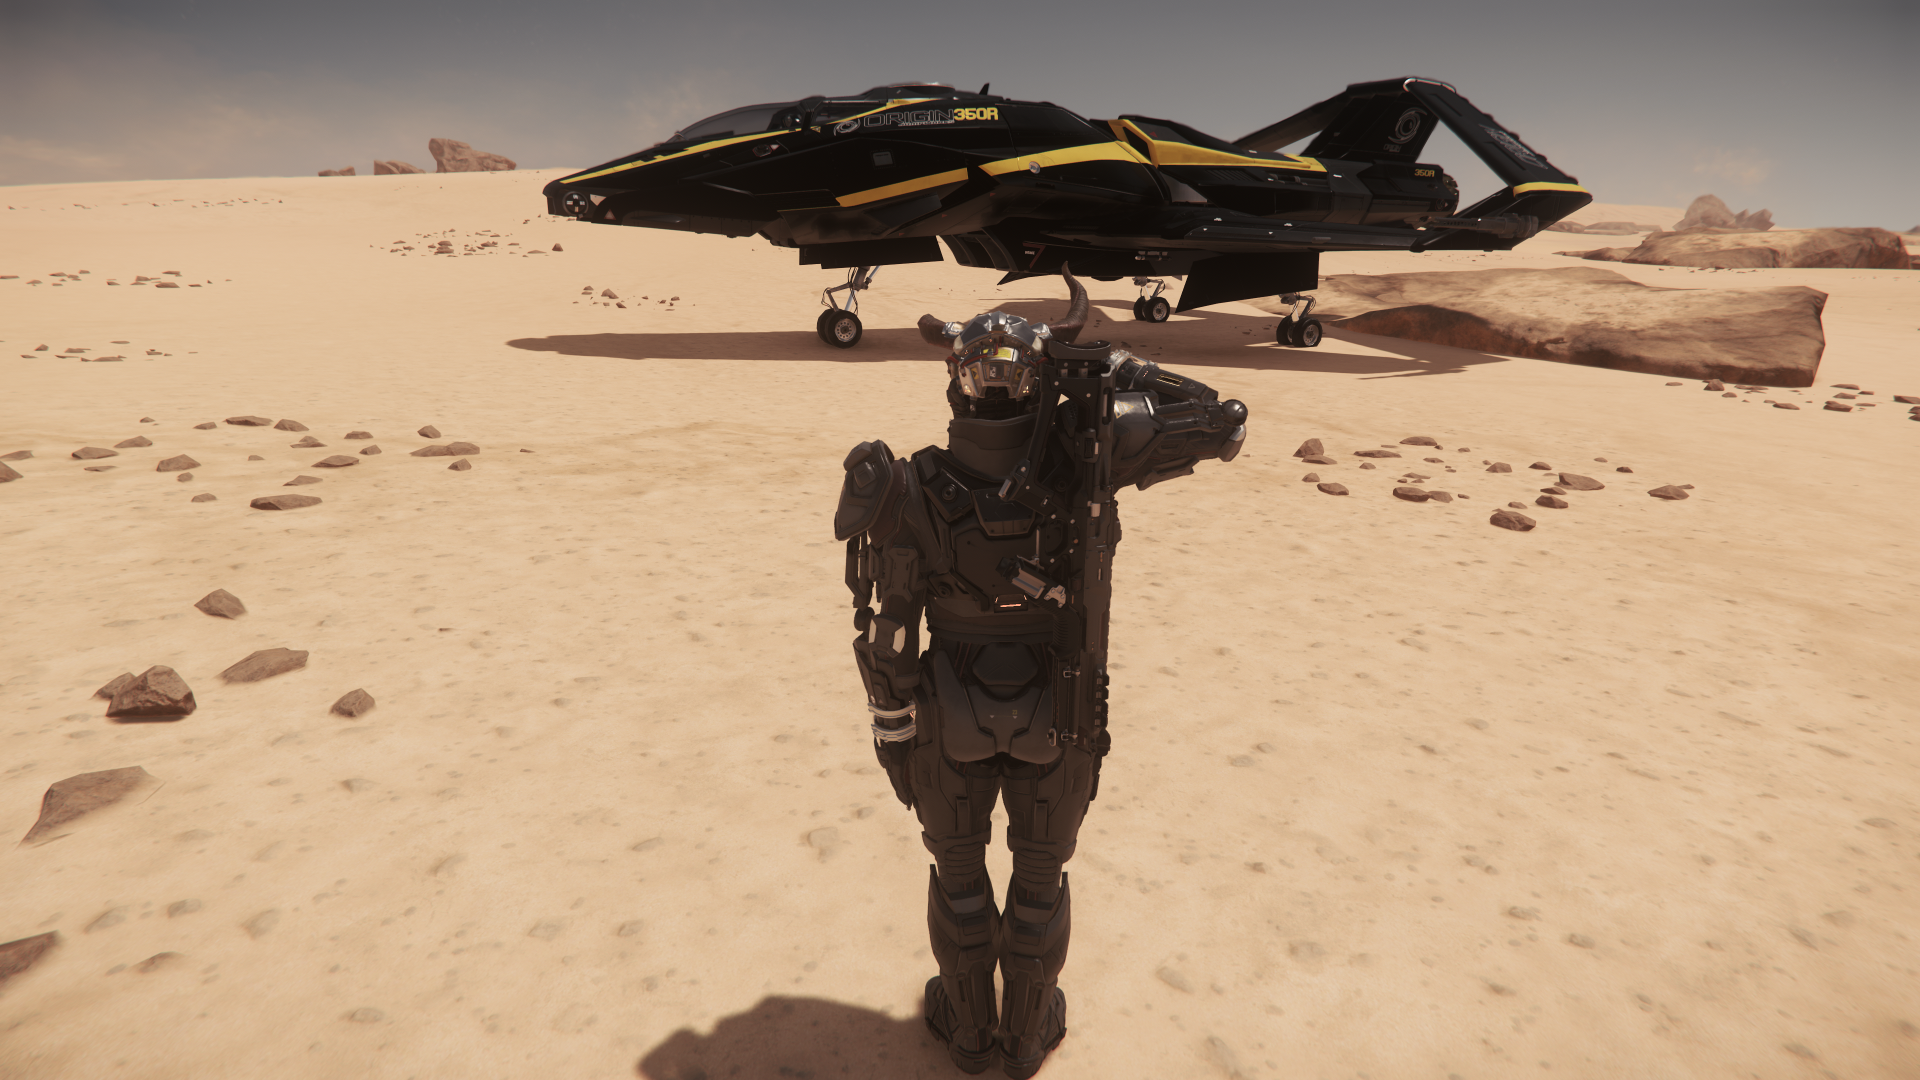 Squadron 42 - Star Citizen Screenshot 2019.03.19 - 20.05.00.73.png